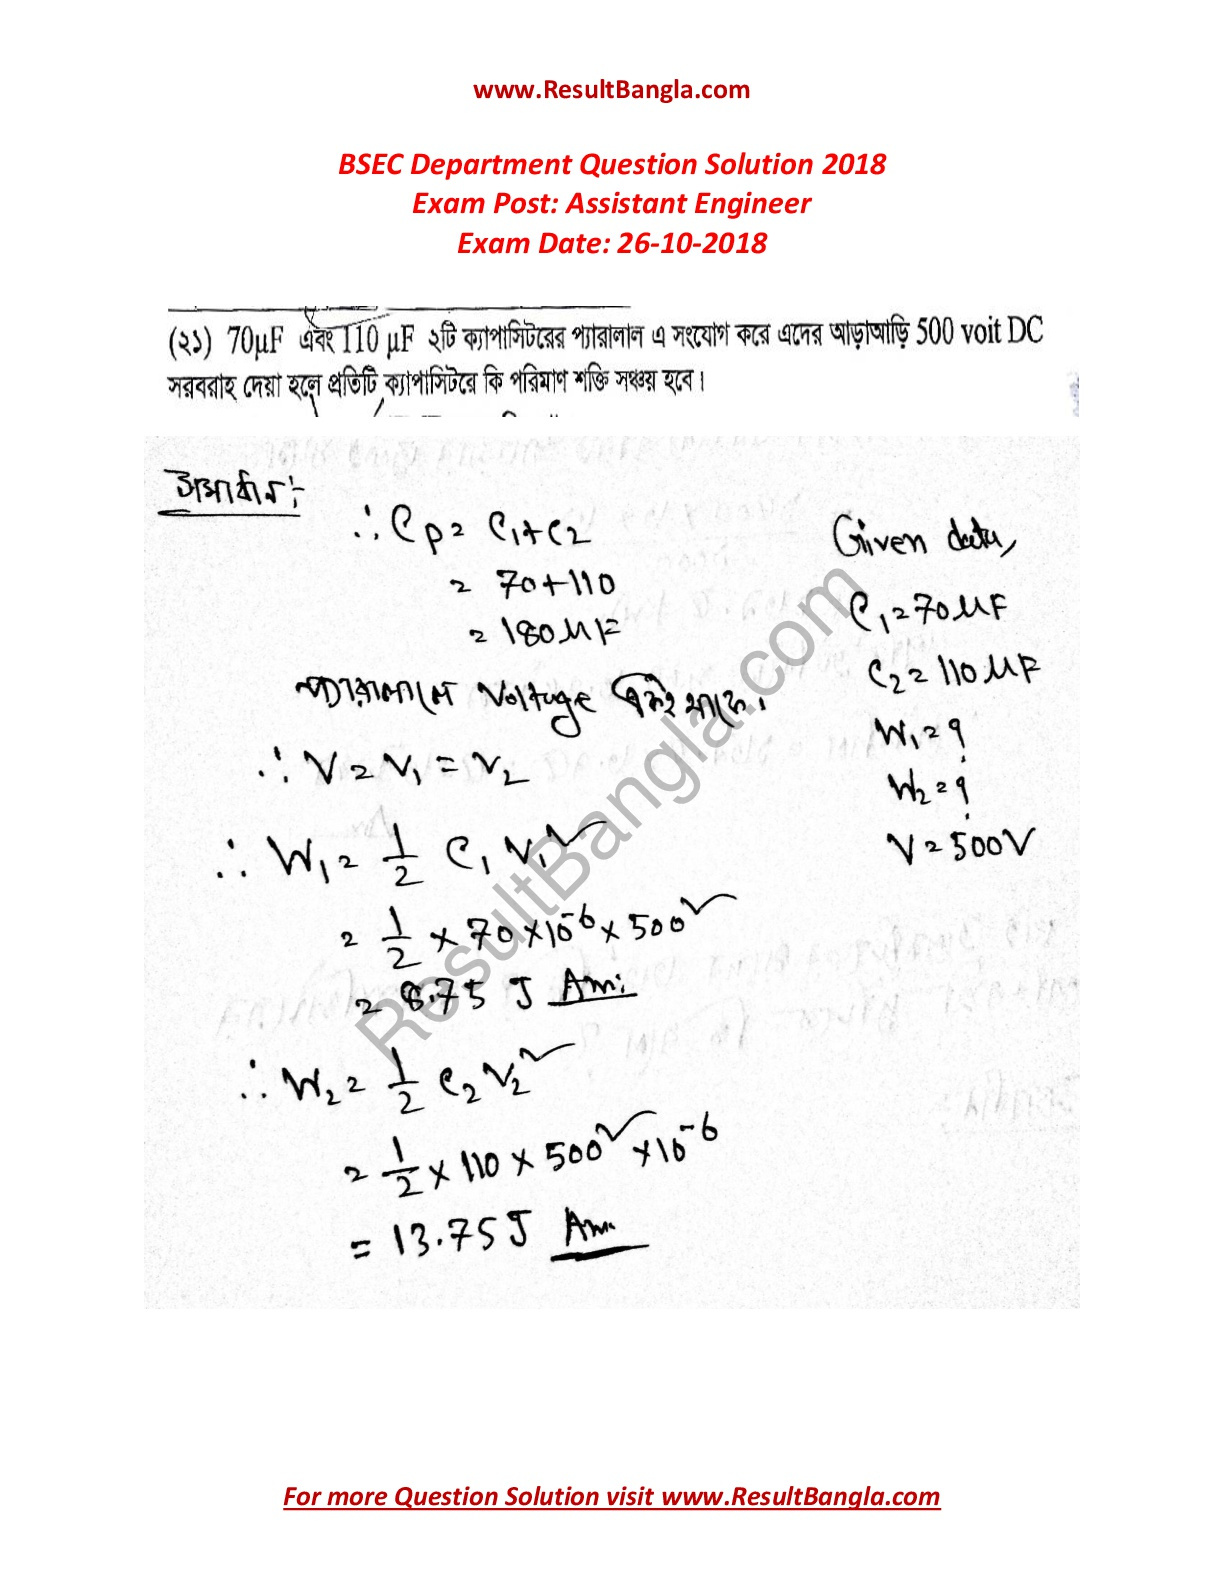 BSEC Department Question Solution 2018